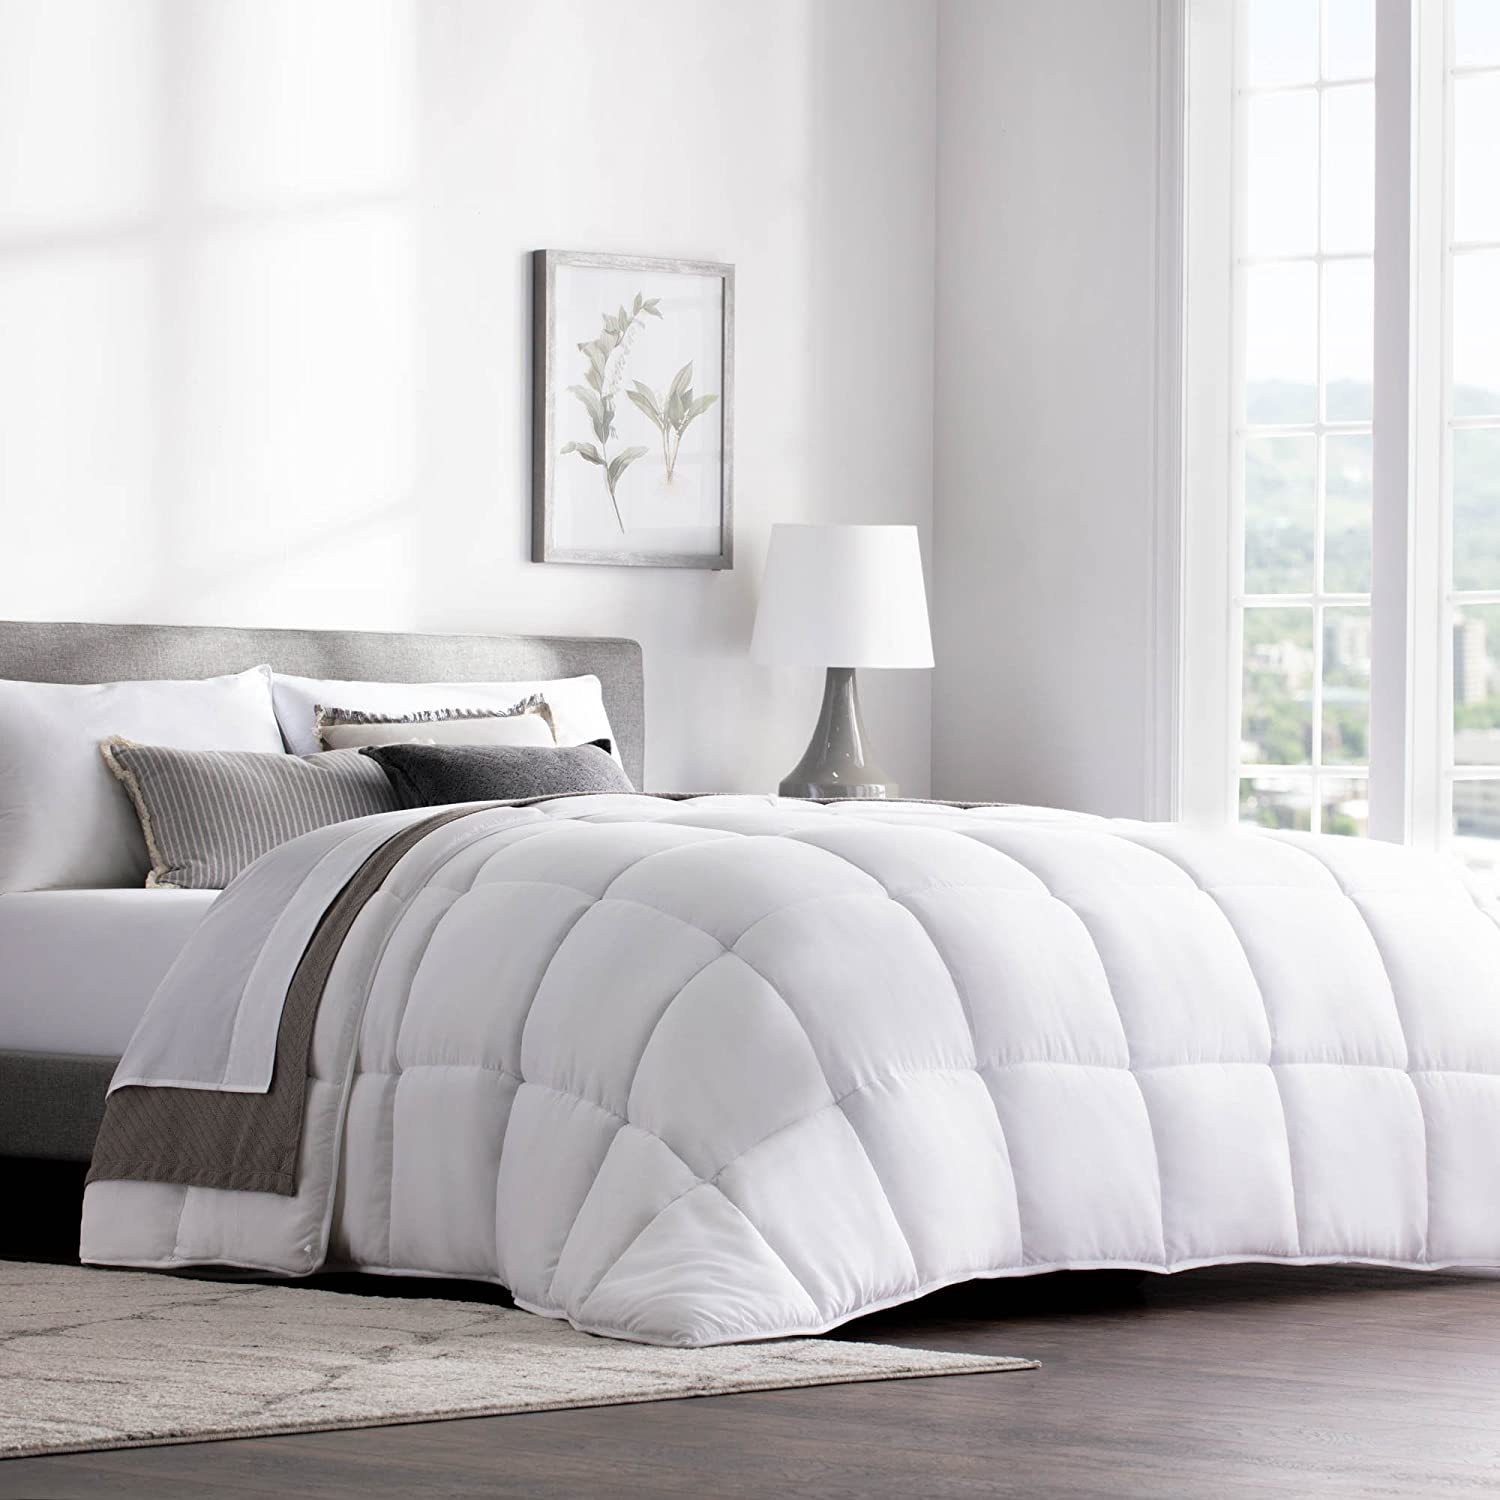 WEEKENDER Hypoallergenic Quilted Down Alternative Hotel-Style Use Insert or Stand-Alone Comforter-for All Seasons-Corner Duvet Tabs, Queen Classic White